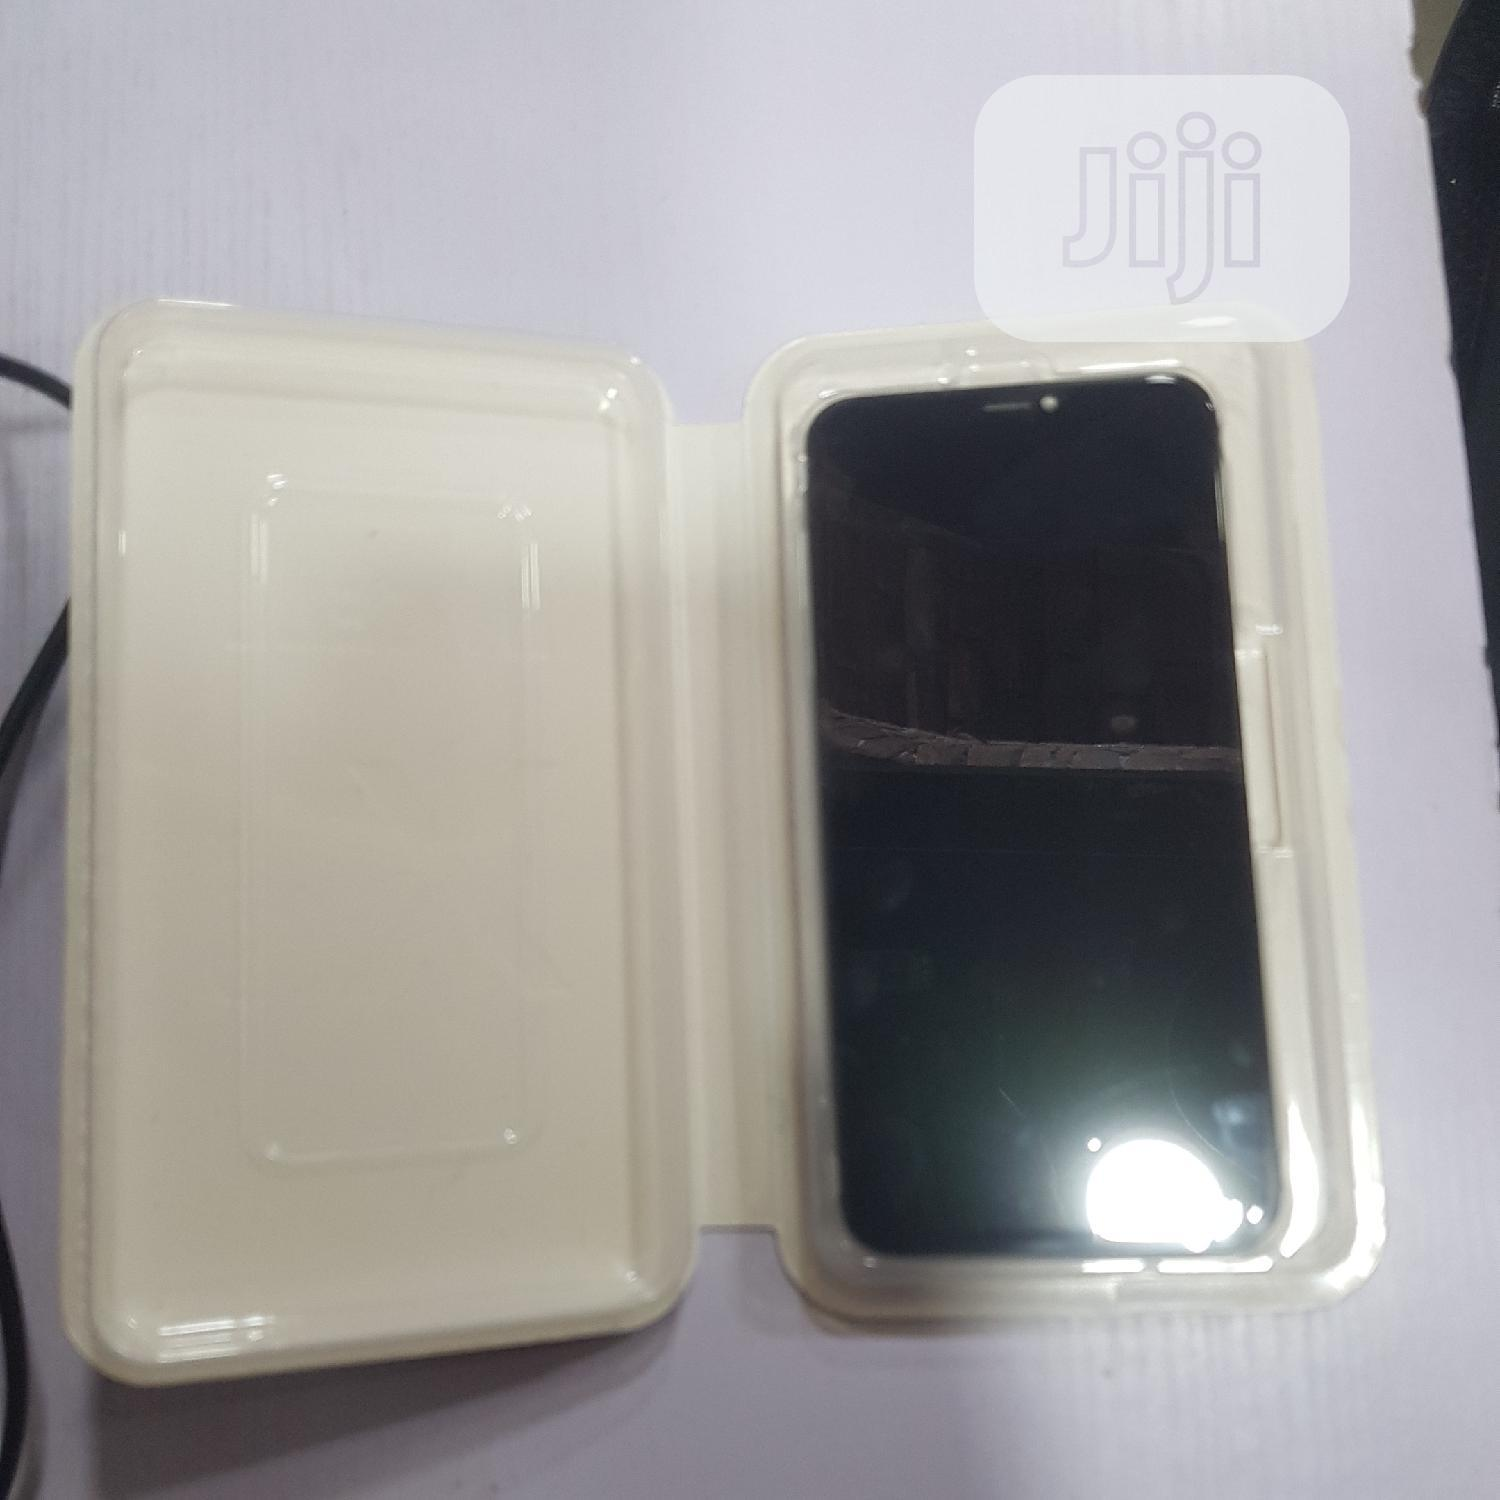 iPhone Xs Max LCD Digitazer   Accessories for Mobile Phones & Tablets for sale in Warri, Delta State, Nigeria